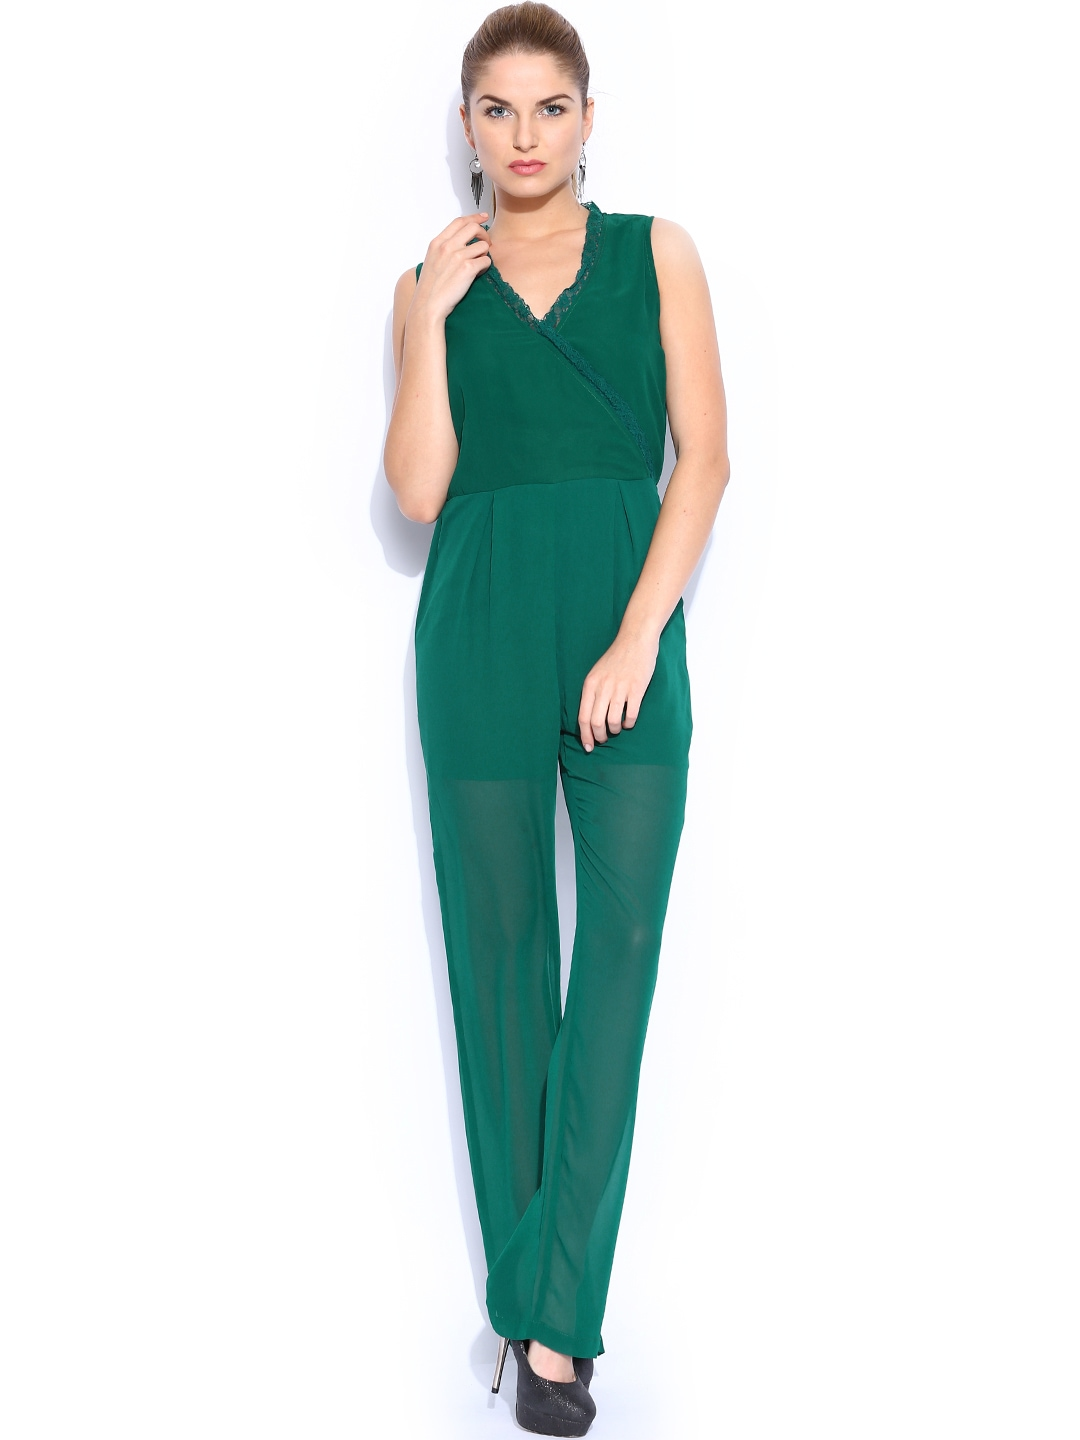 Wonderful Convertible Neckline And Waist Straps Allow You To Create Multiple Flattering Looks In This Soft Jersey Romper Finished With Swingy Shorts That Flatter Your Legs Wear It As You Want And Feel Made To Order The Color On The Photo Is Greenery